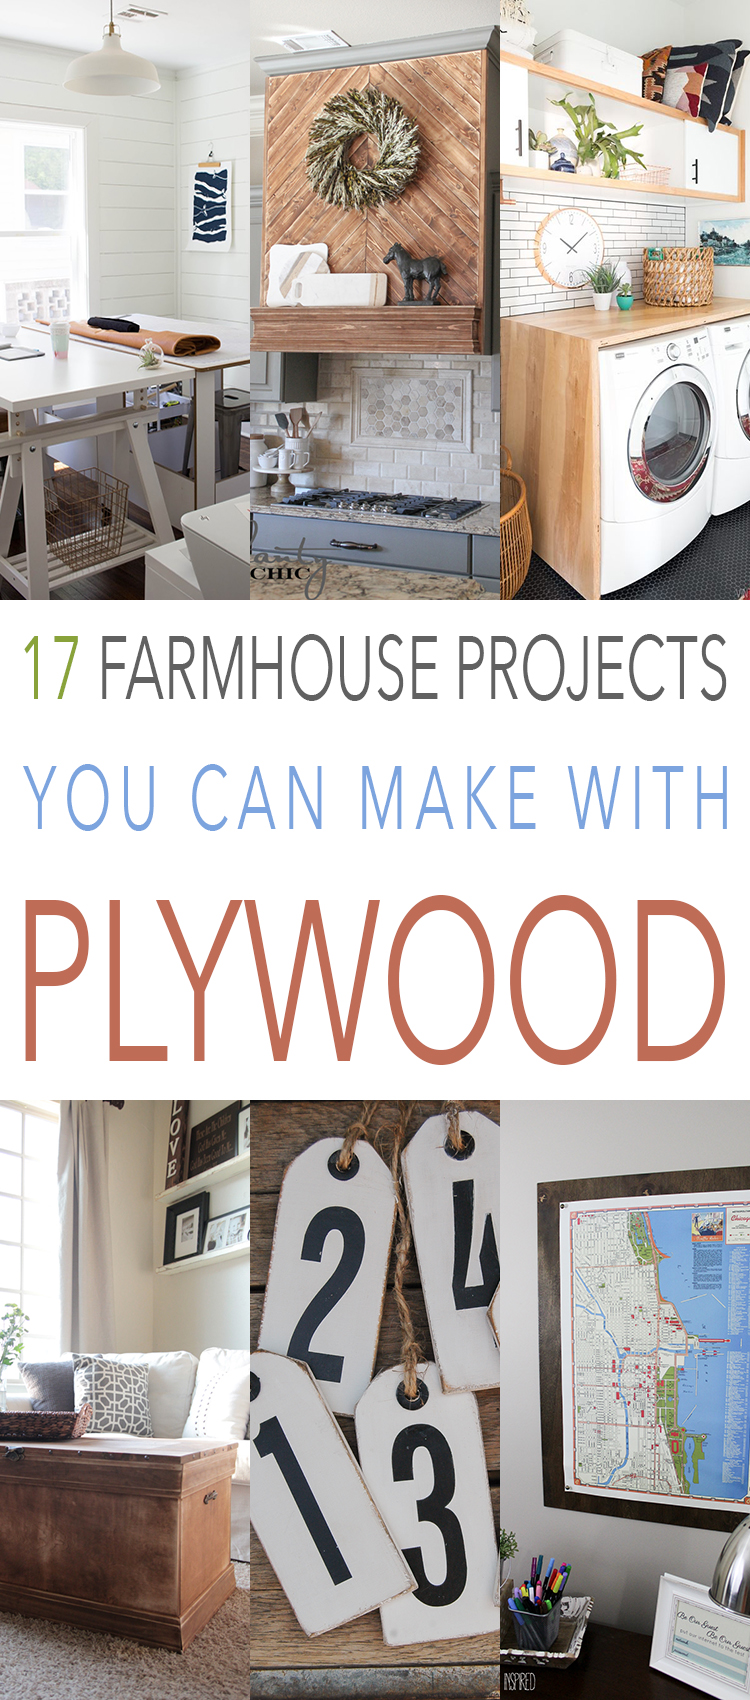 These farmhouse projects made with plywood are so easy.